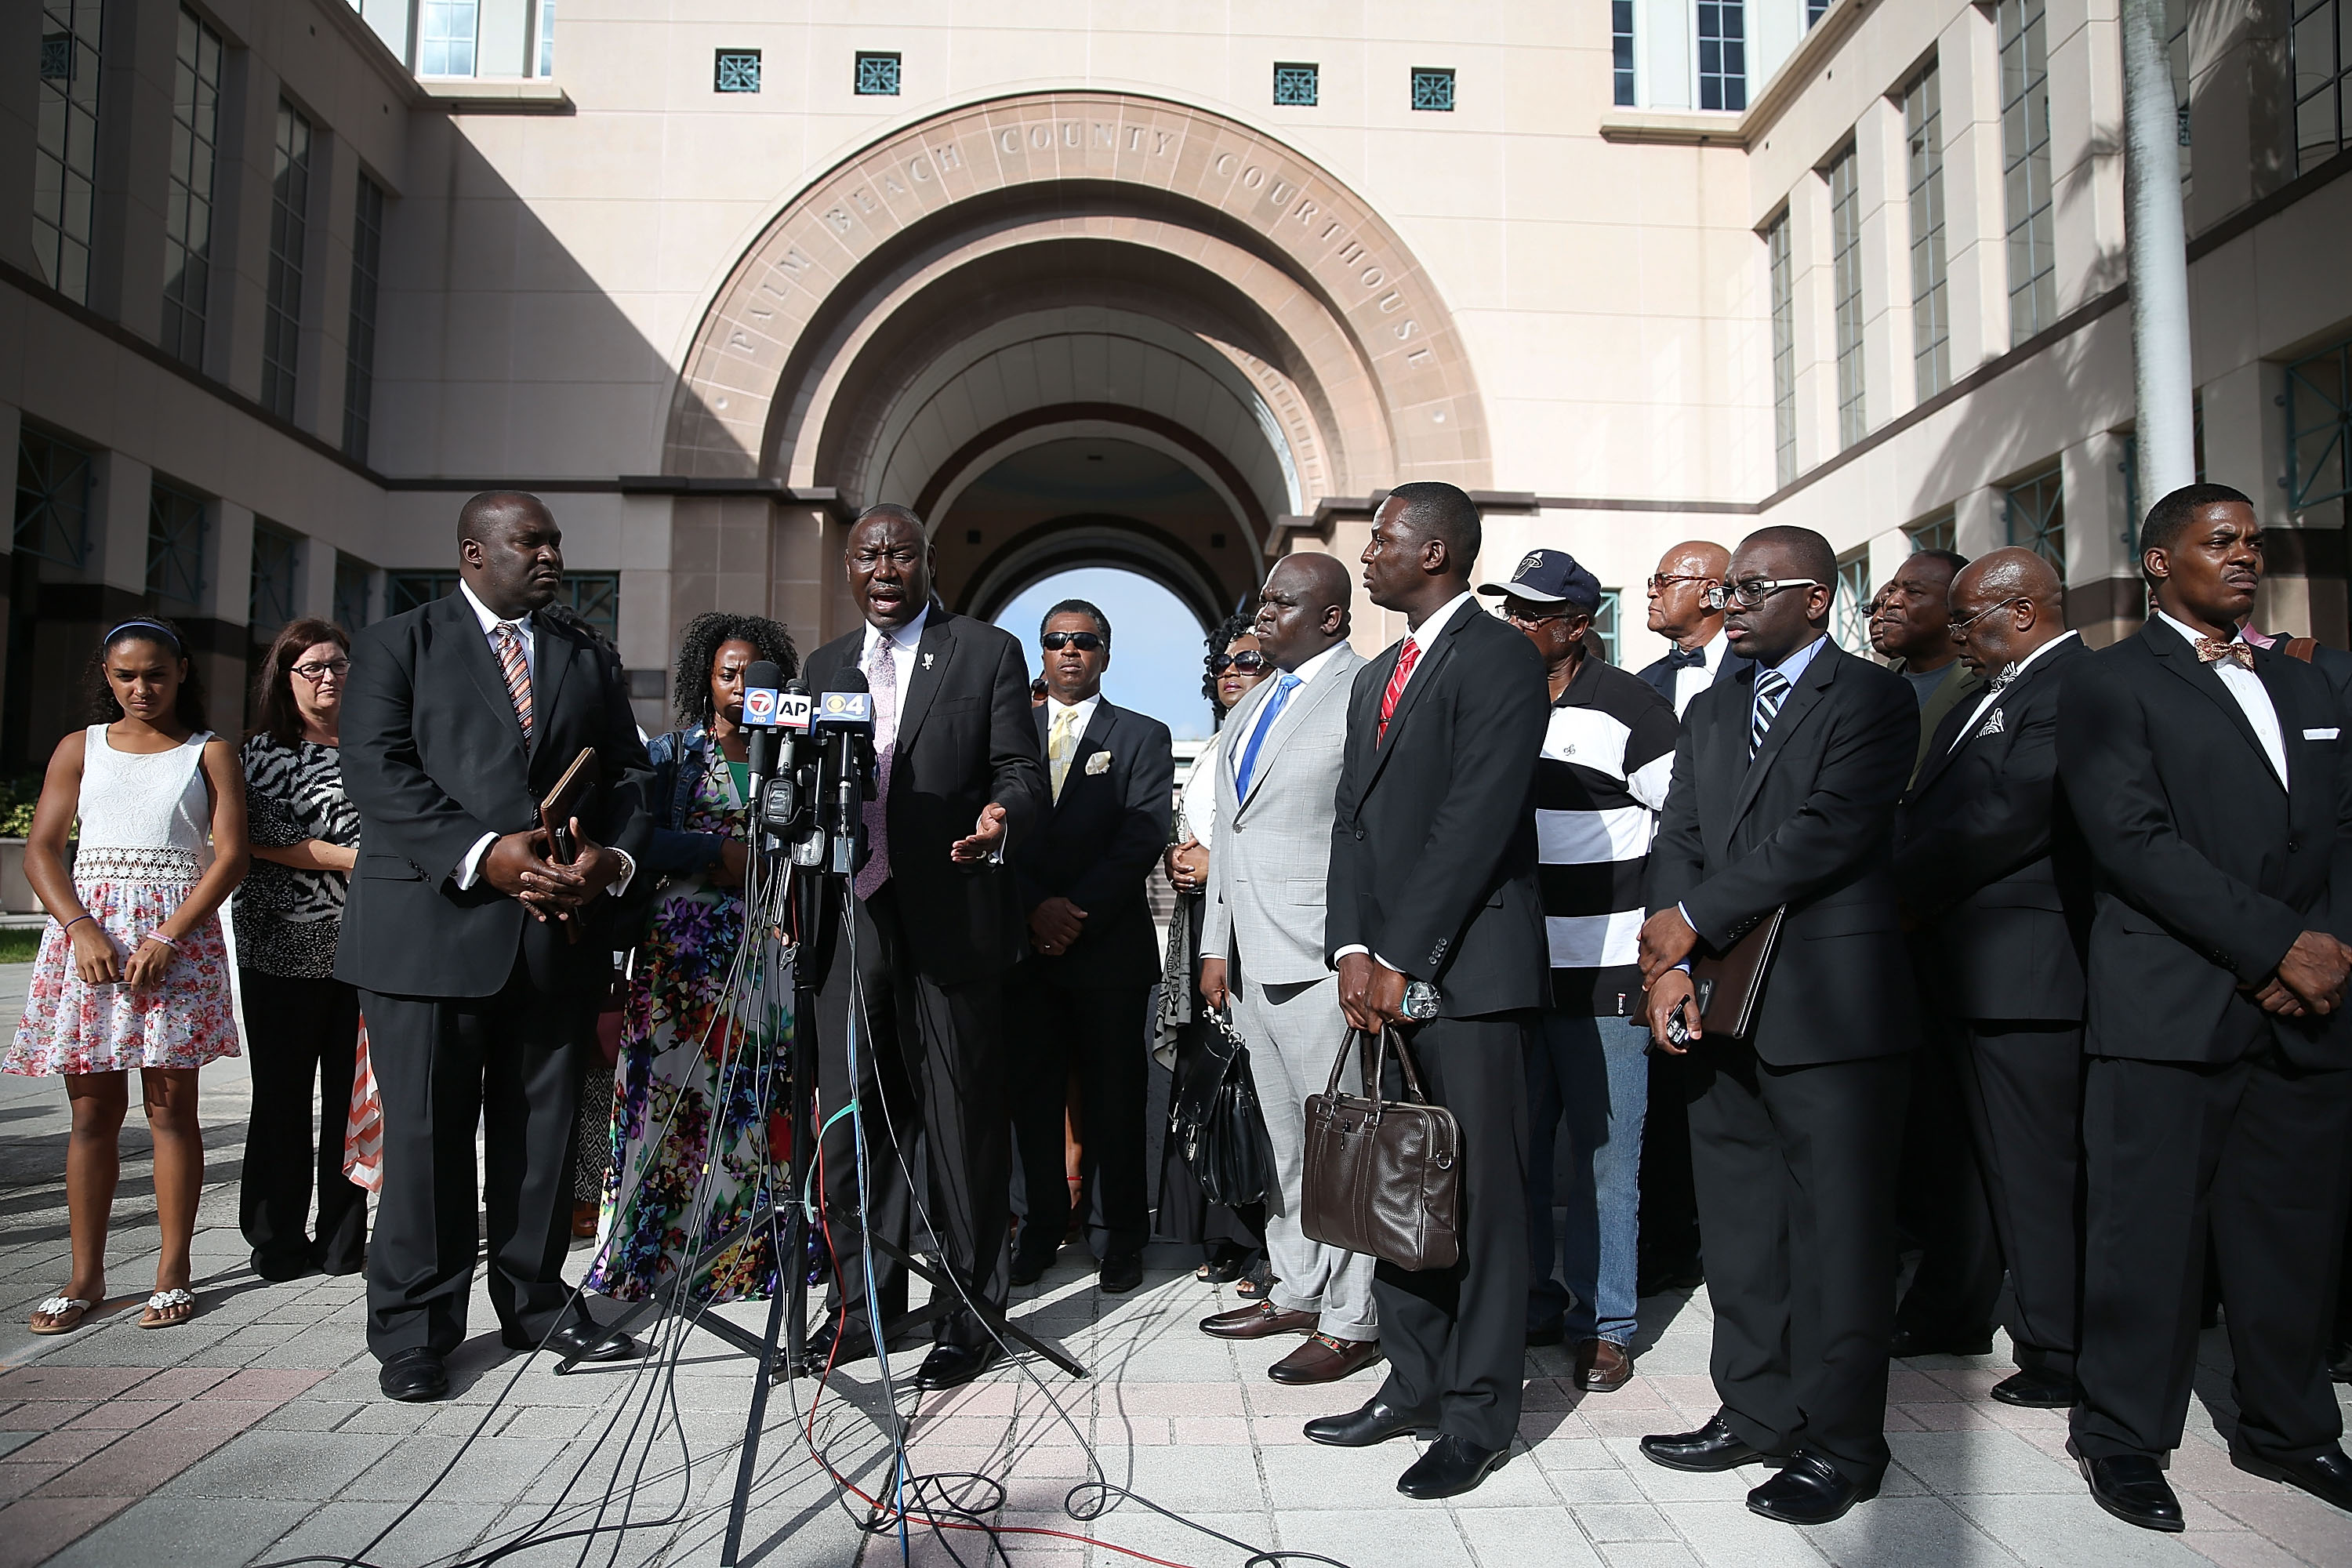 Benjamin Crump, an attorney for the Corey Jones' family, speaks to the media during a press conference to address the shooting of Mr. Jones, in West Palm Beach, Florida, on Oct. 22, 2015.